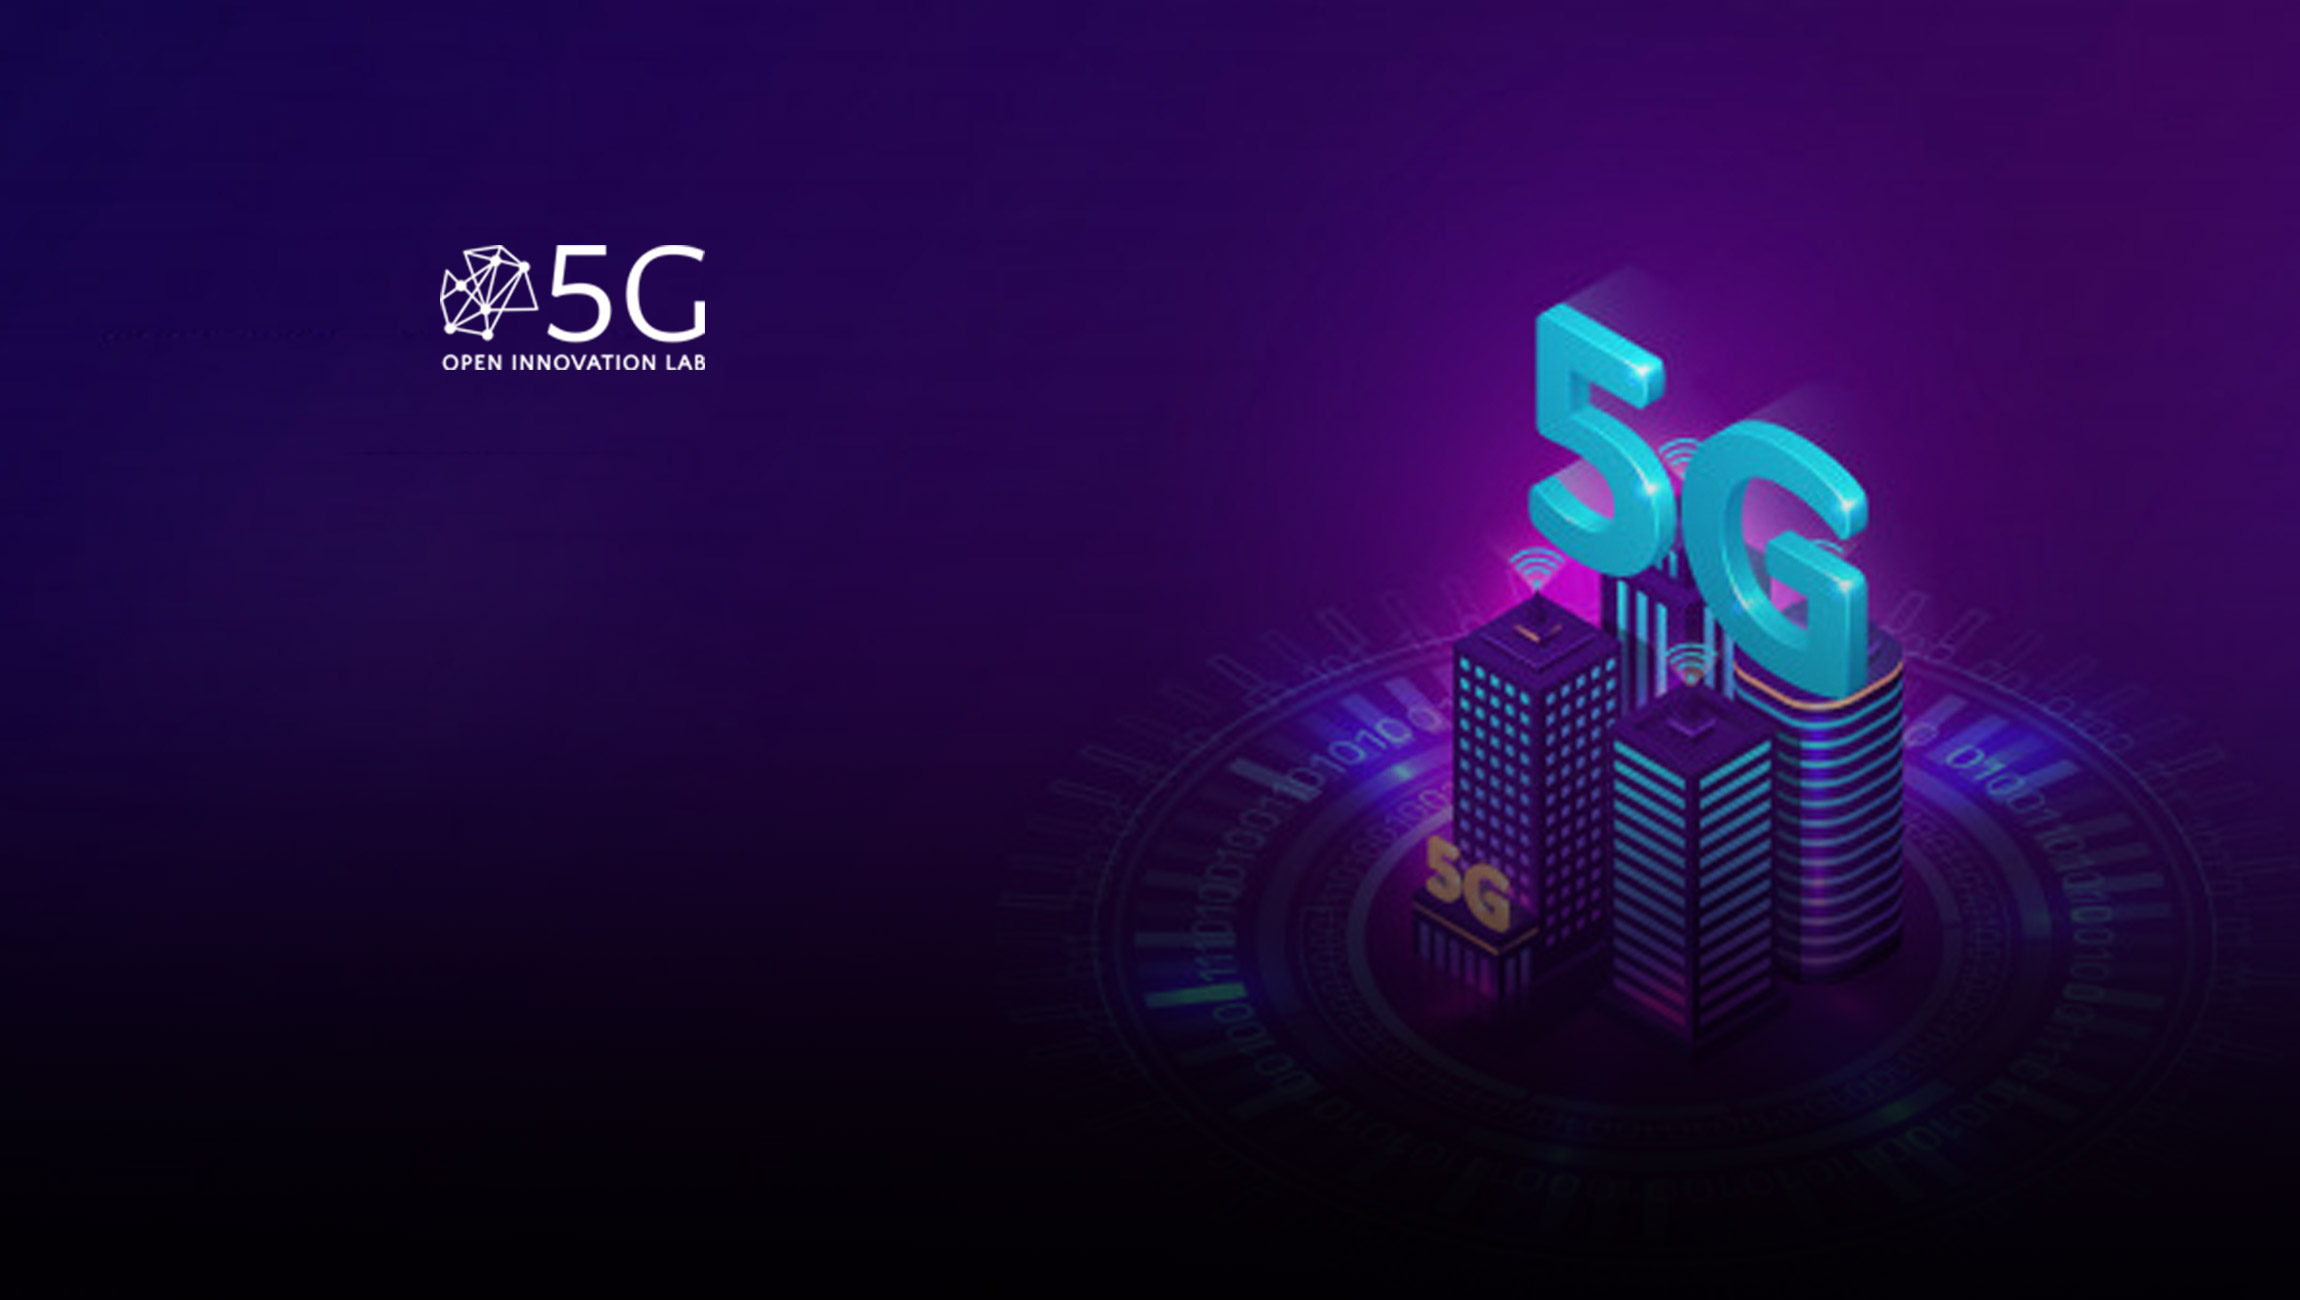 5G-Open-Innovation-Lab-Actively-Recruiting-Companies-for-3rd-Batch-Focused-on-Edge-Computing_-5G-Enabled-Software-Innovation-in-the-Enterprise